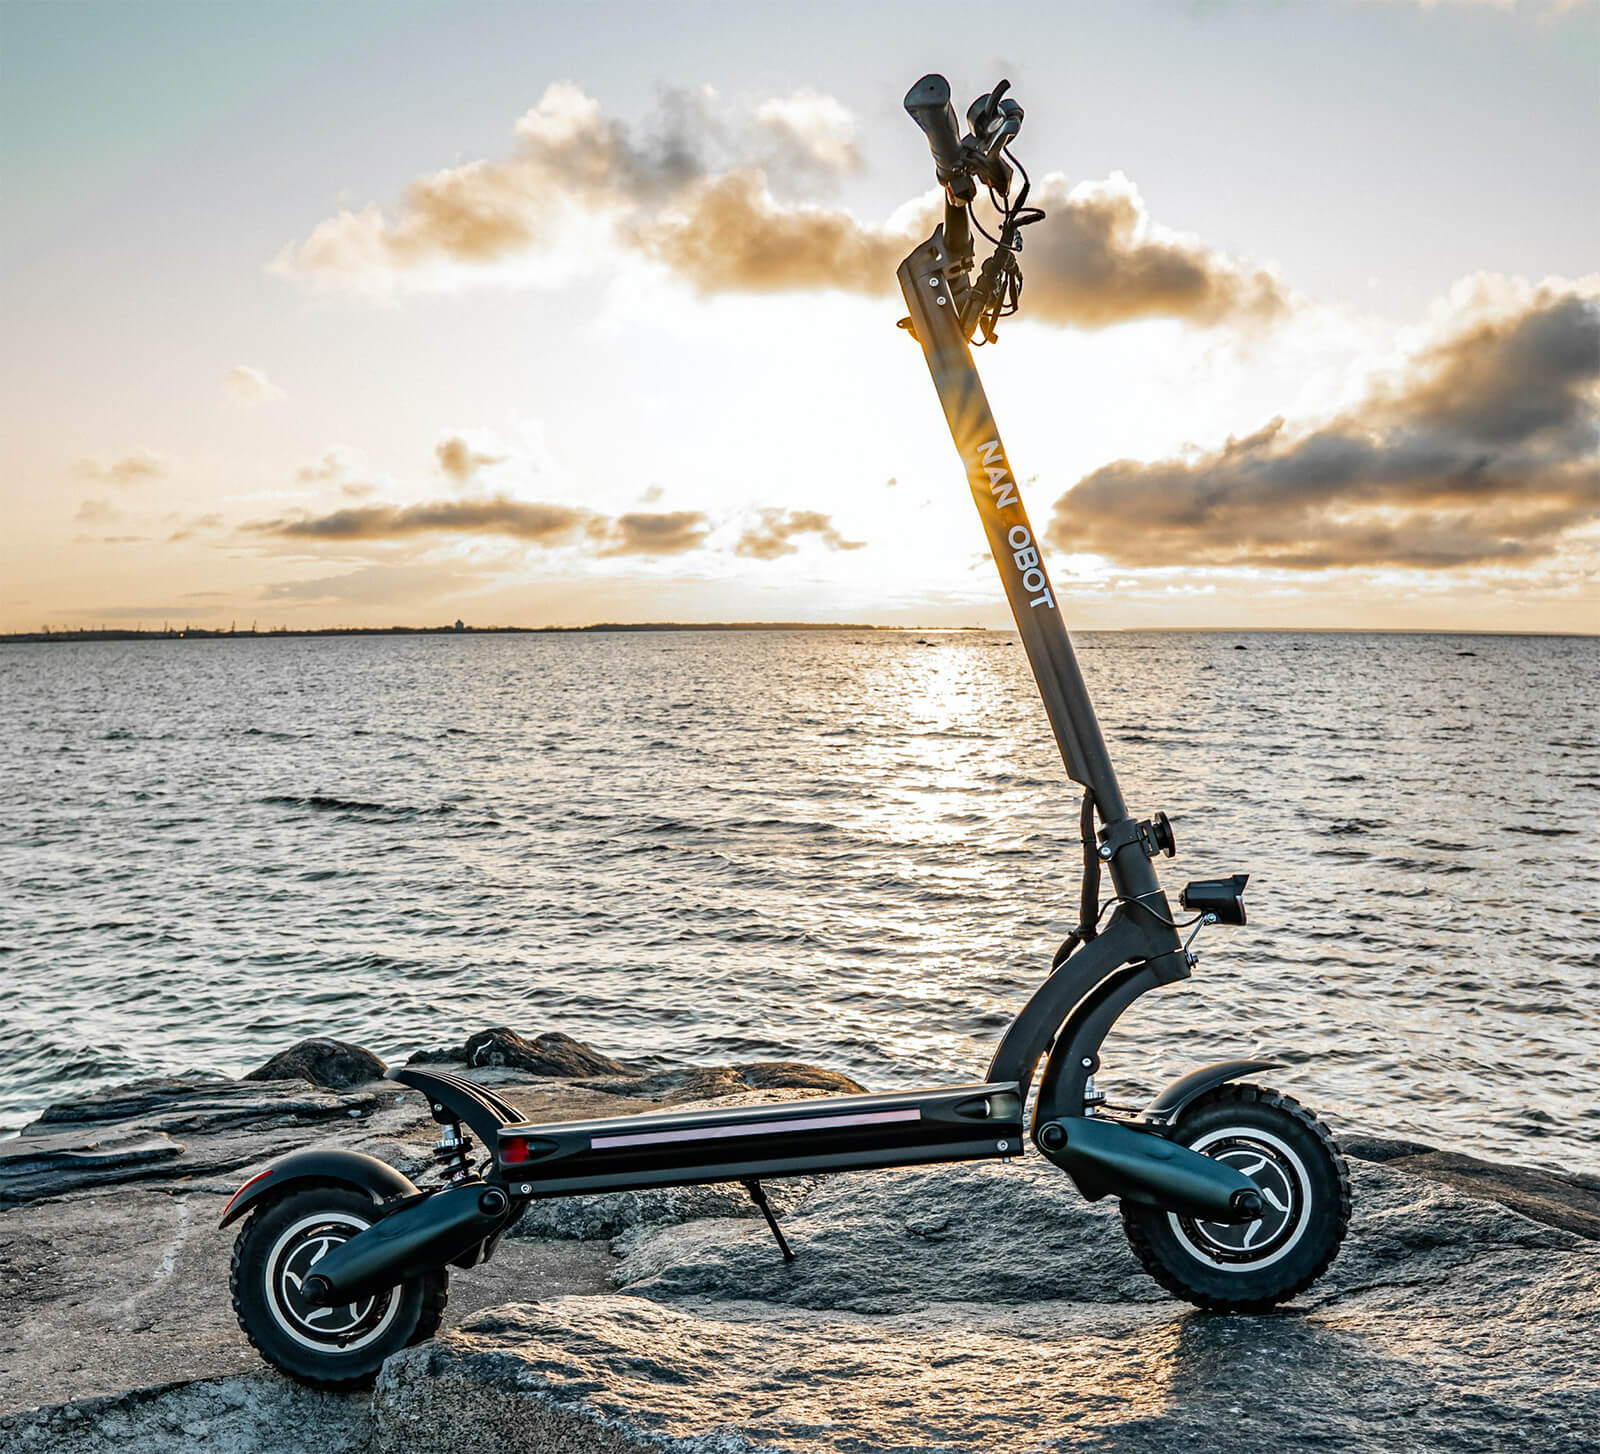 The Best Off-Road Electric Scooters